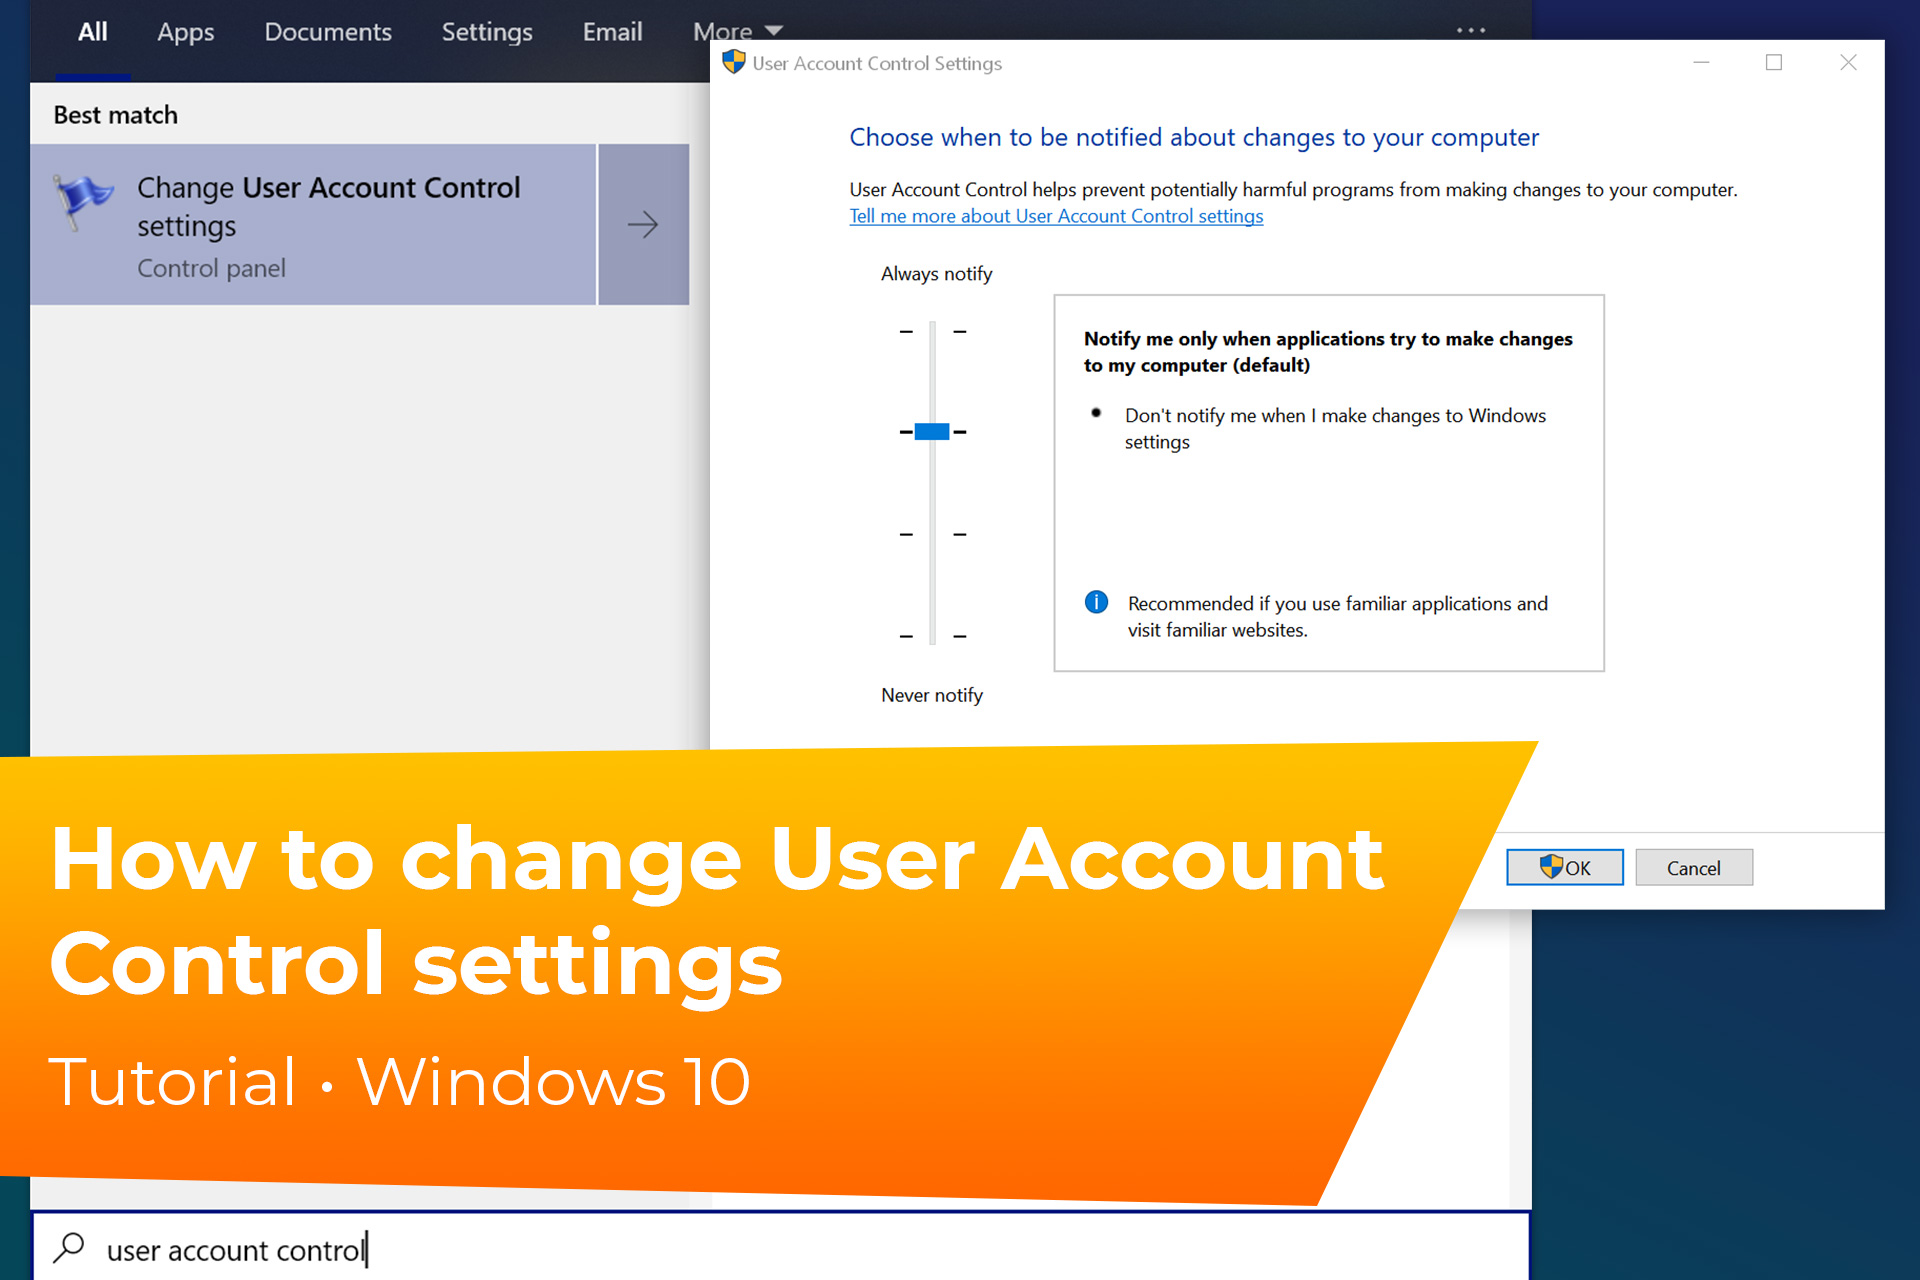 How to change User Account Controls on Windows 10